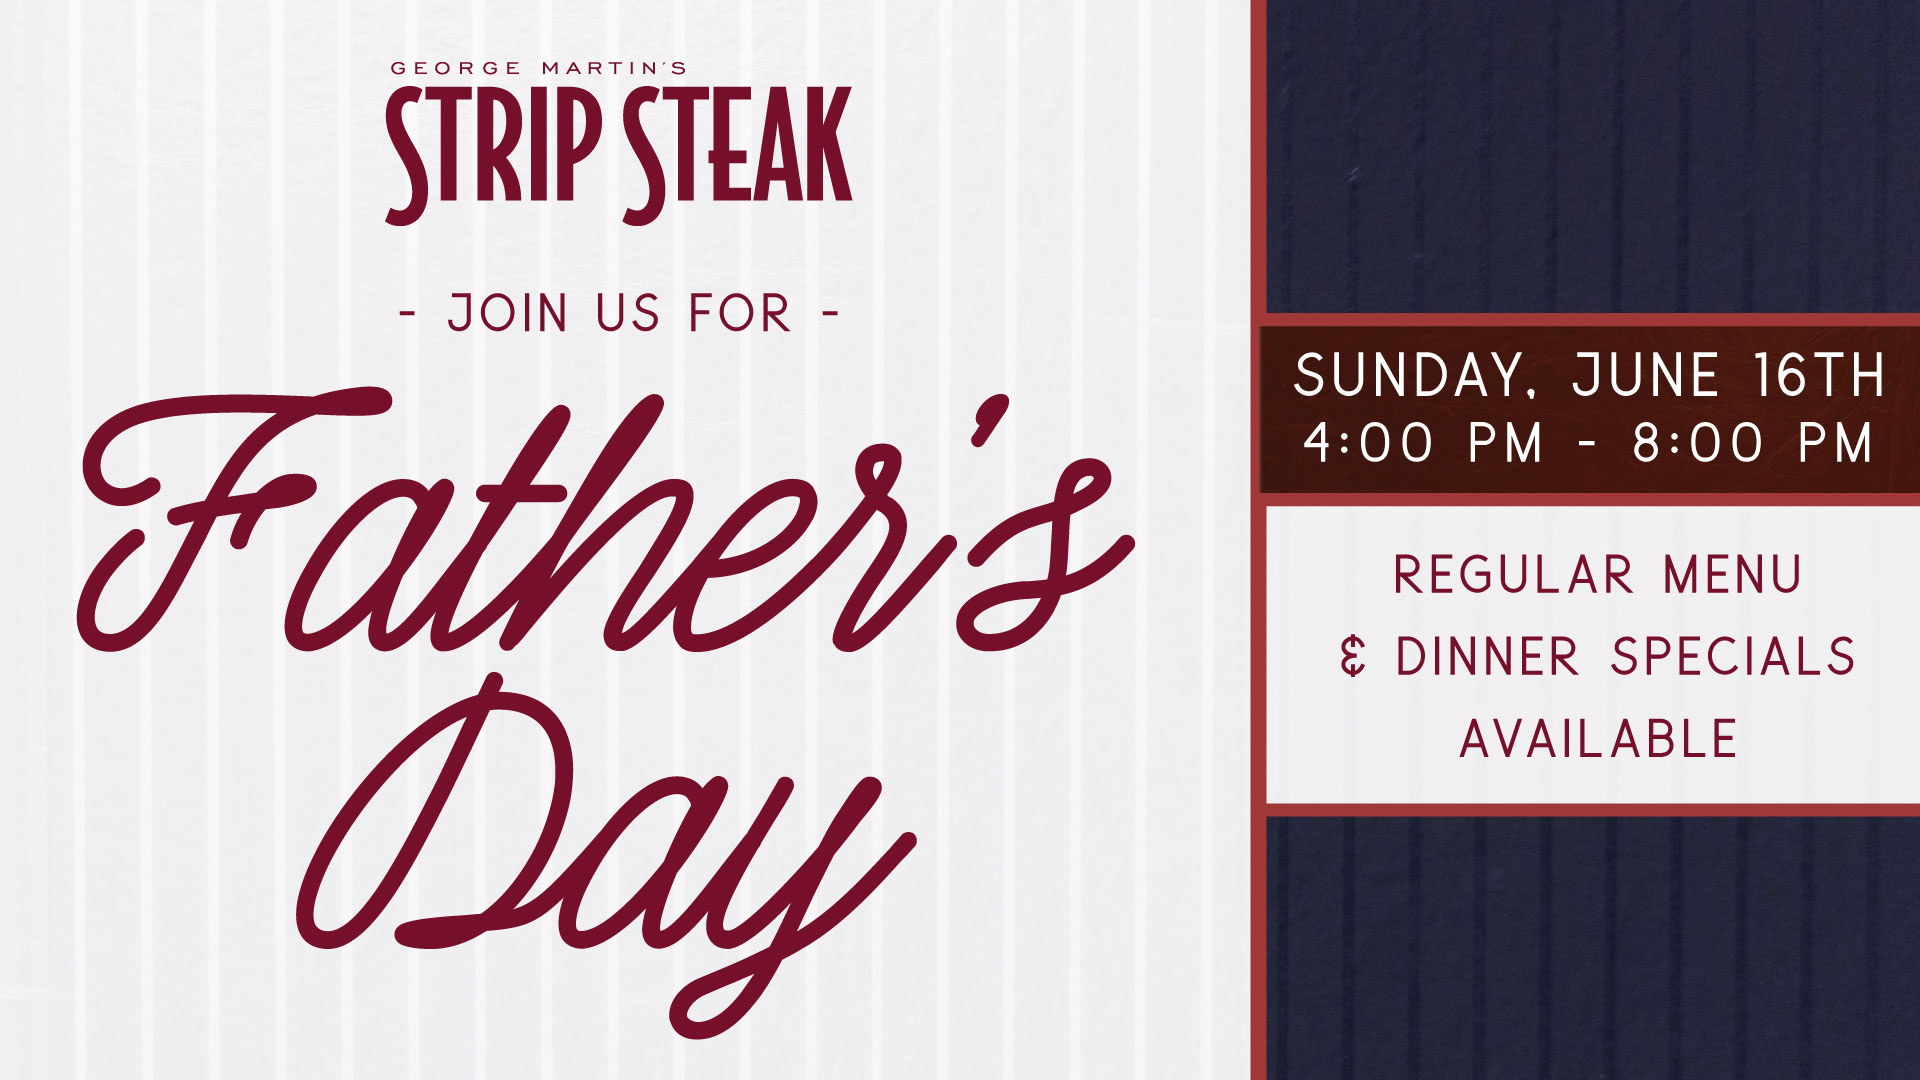 Flyer for Father's Day  on Sunday June 16th from 4 - 8pm